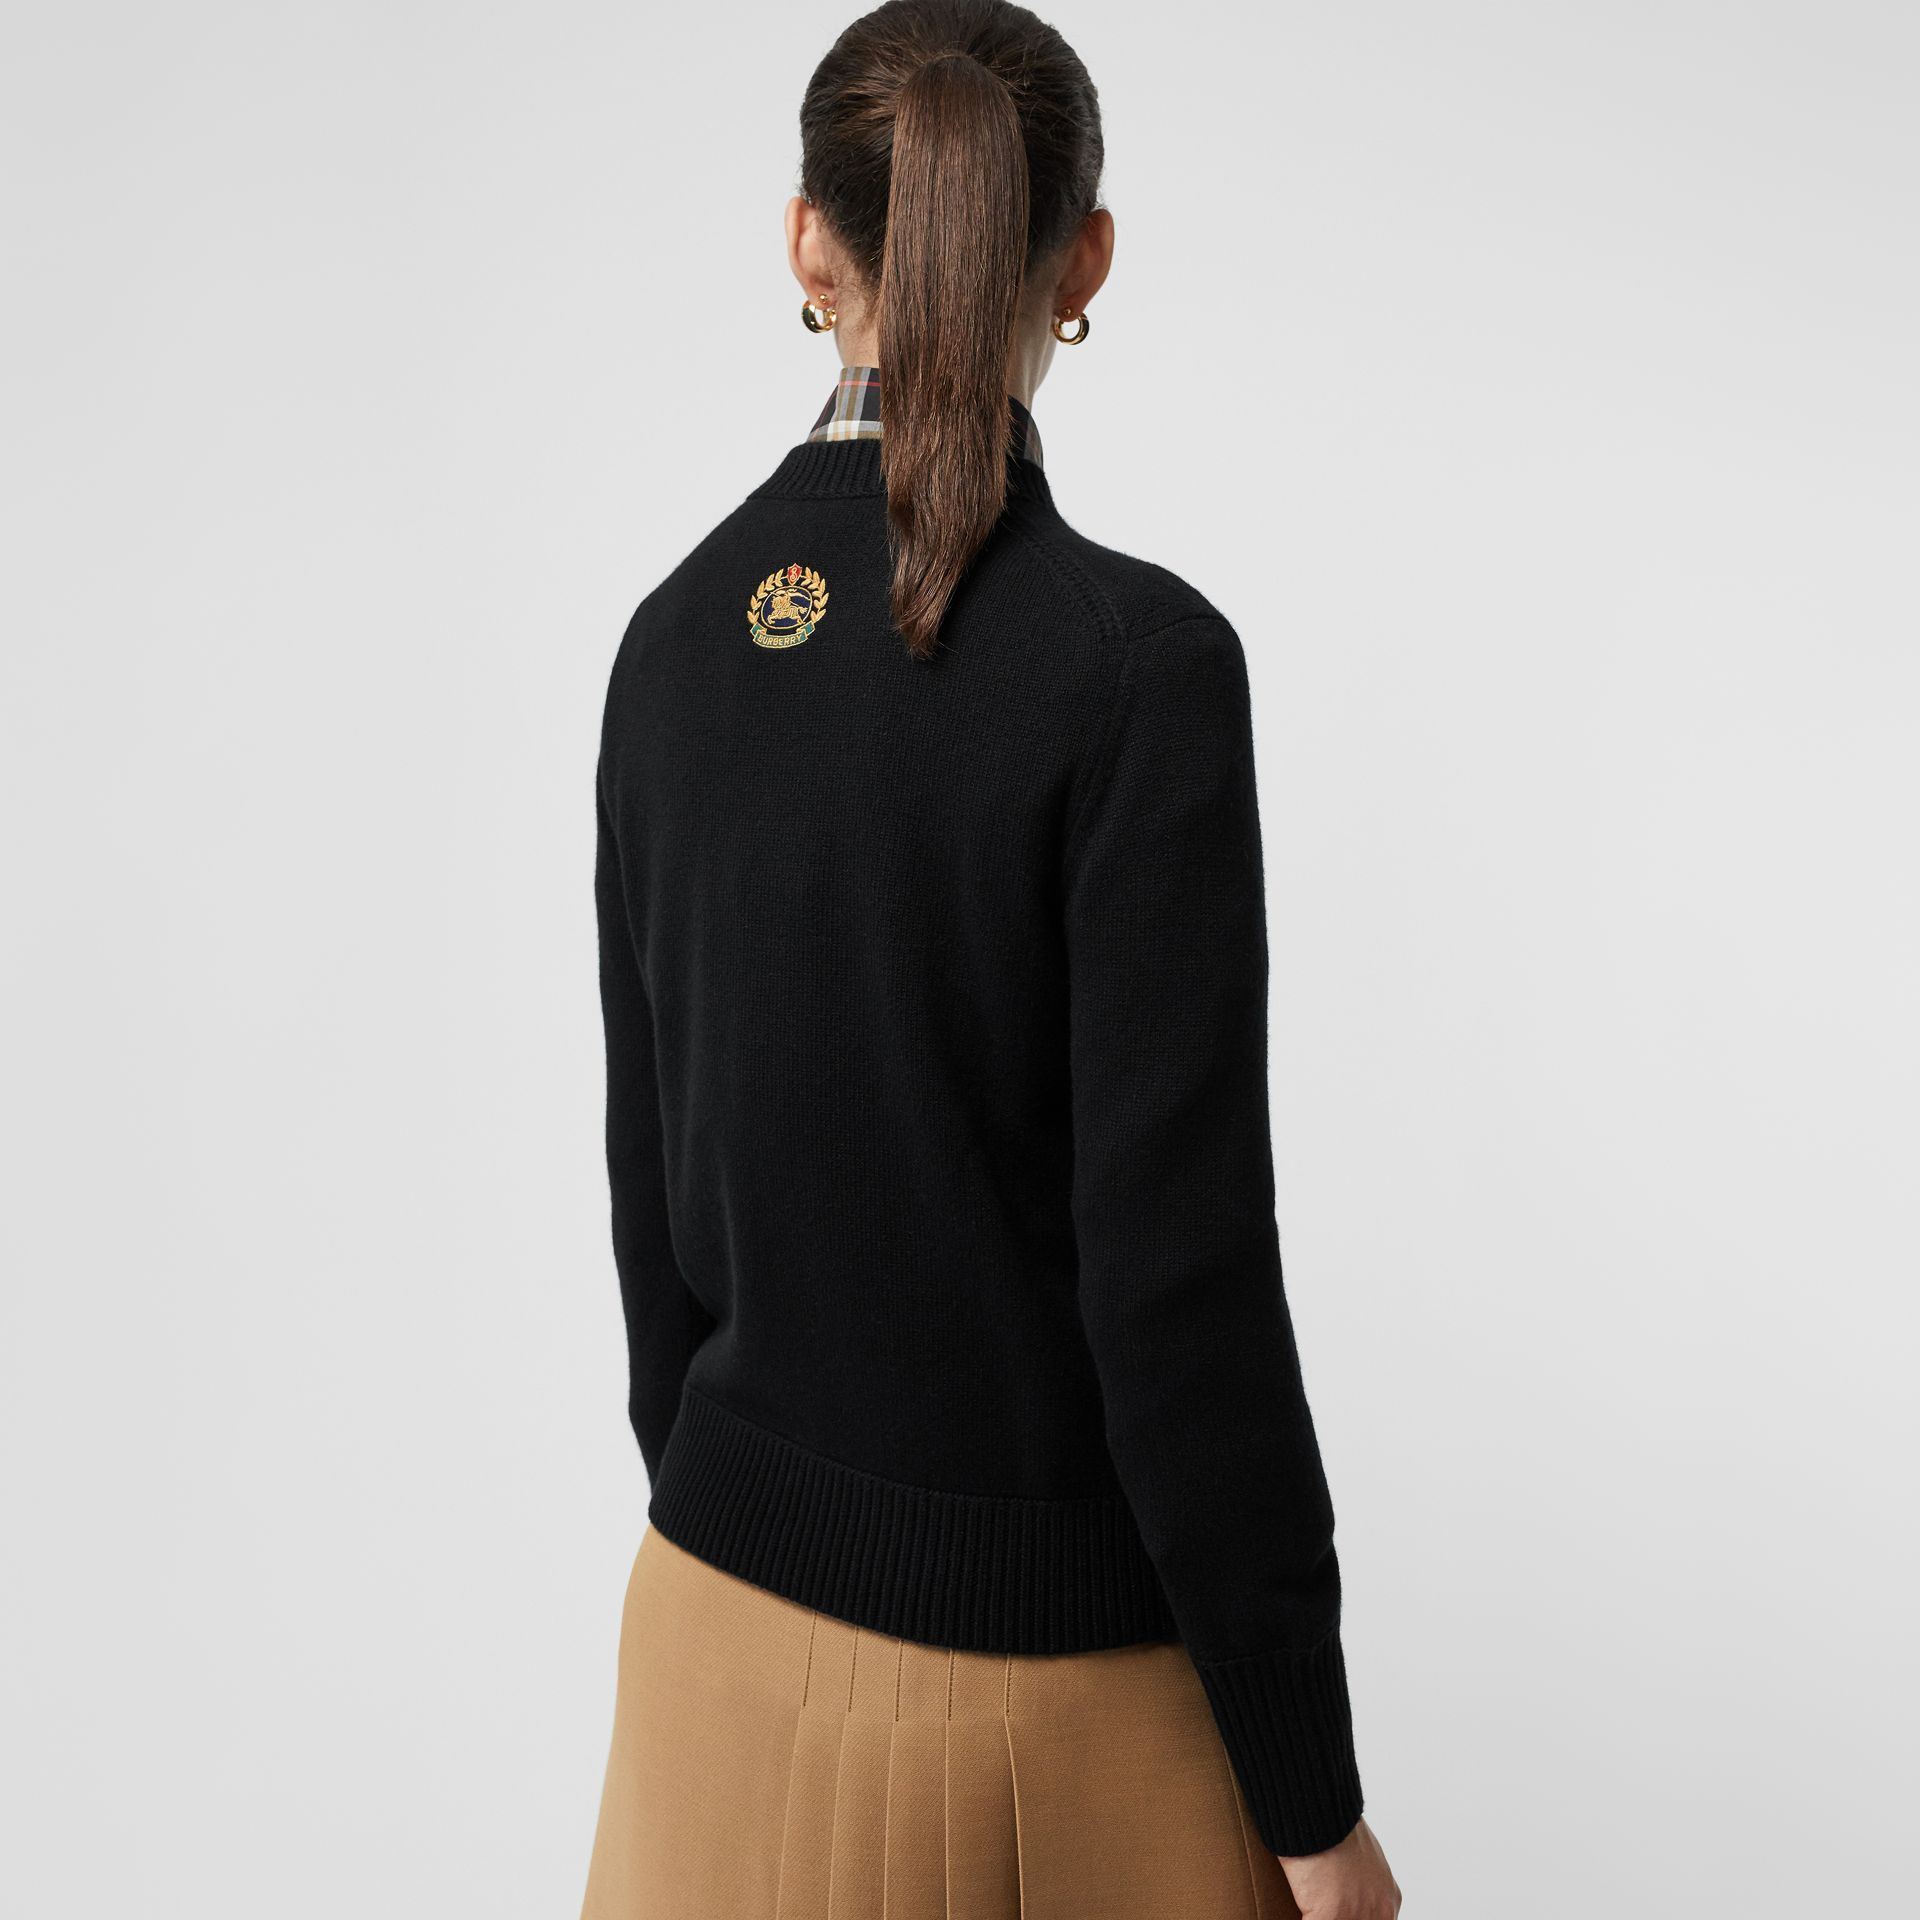 Embroidered Crest Cashmere Sweater in Black - Women | Burberry Singapore - gallery image 4